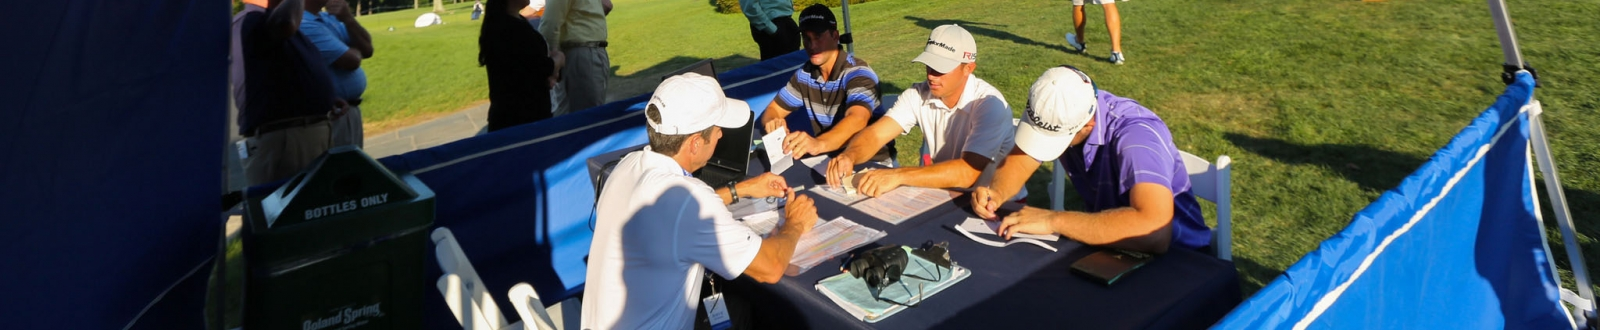 Golfers sitting in a scoring tent